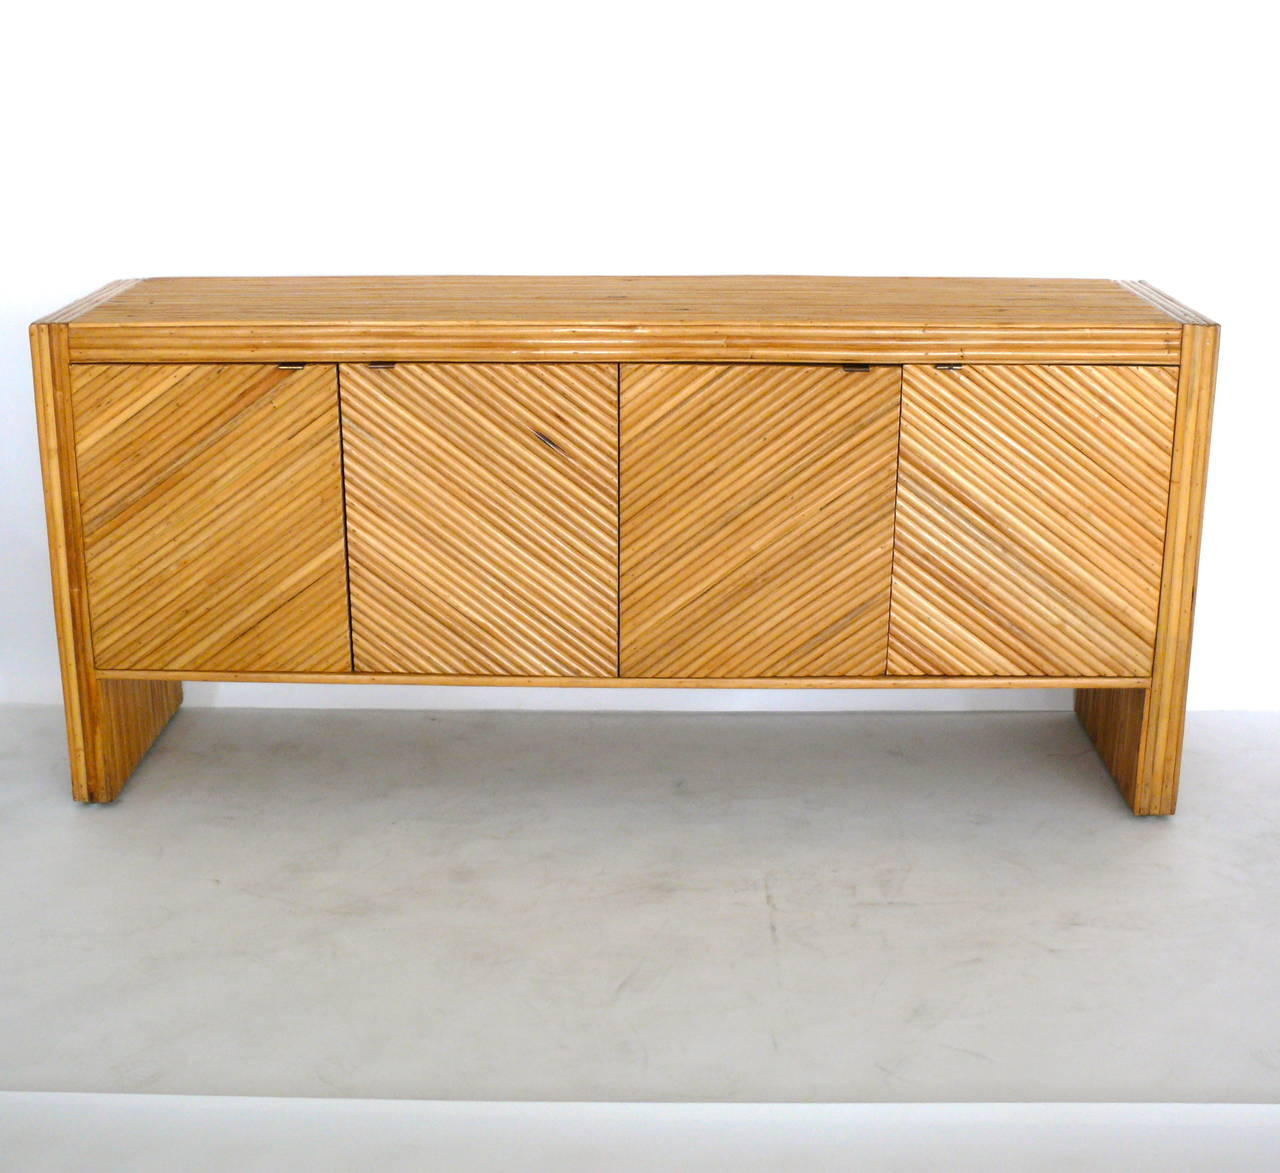 Rattan sideboard in the style of milo baughman at 1stdibs for Sideboard rattan